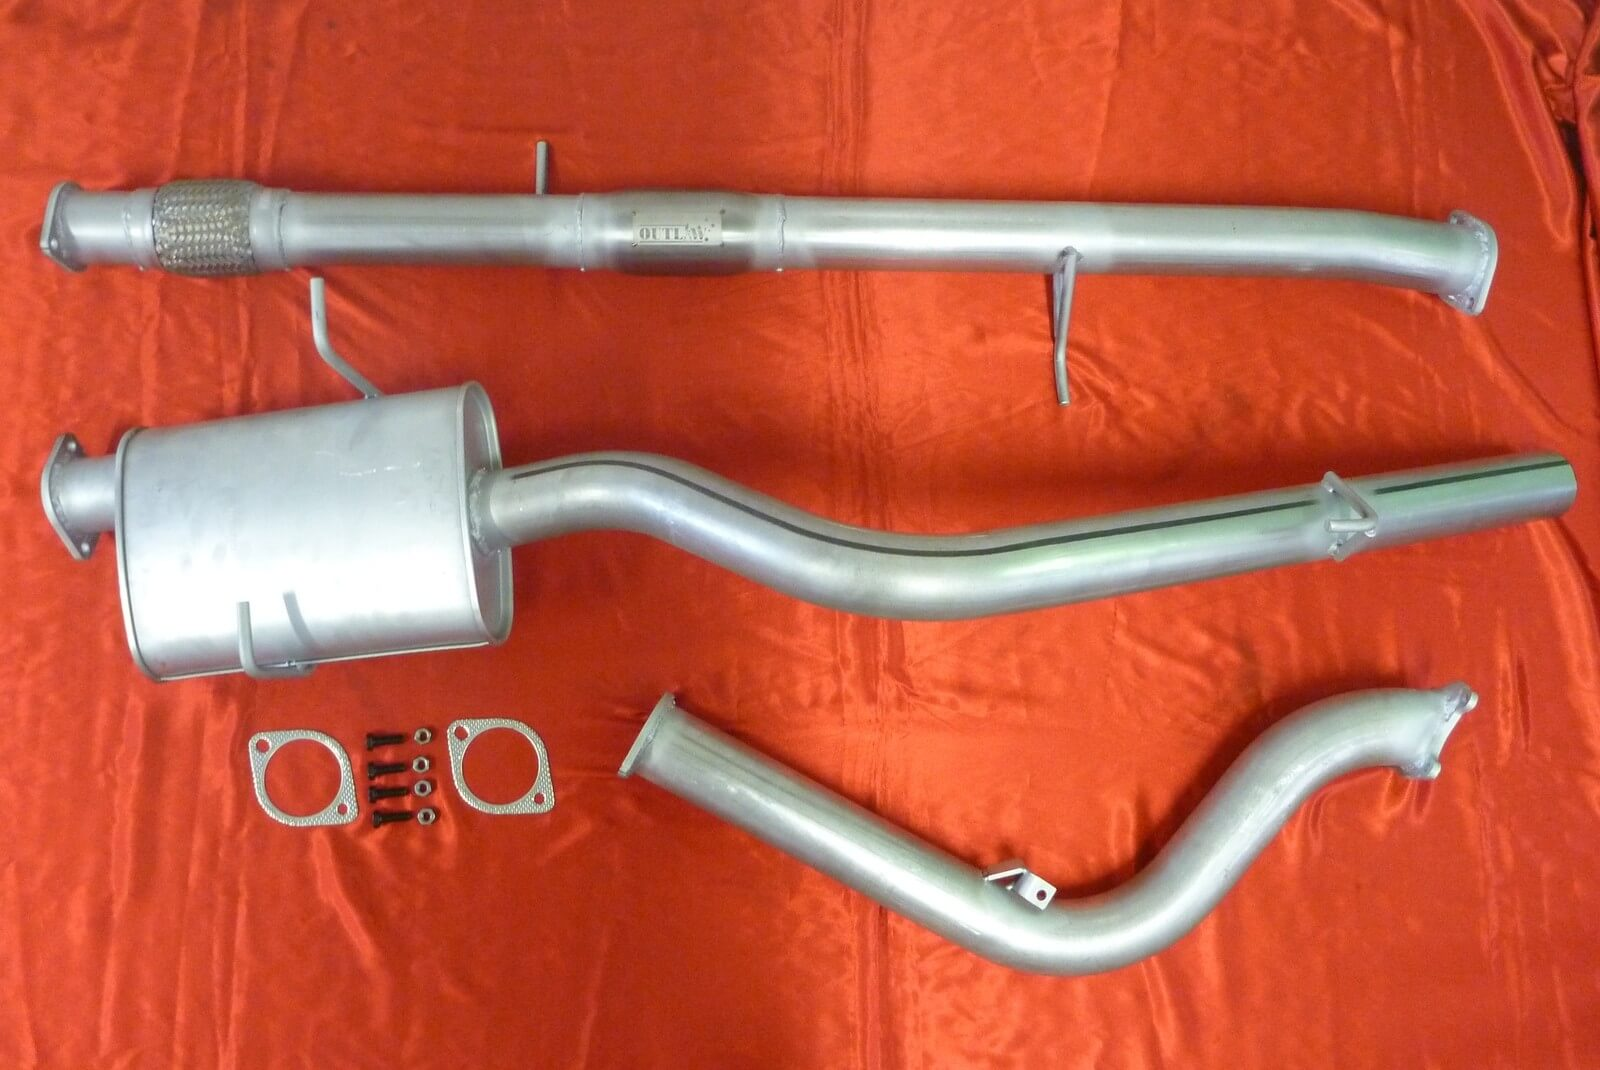 "Mazda Bravo B2500 3"" Exhaust 4x4 Turbo Diesel 2.5L Ute 1999 - 2006 with Cat 409 Stainless Steel 3 inch Turbo Back Exhaust - Click to enlarge picture."